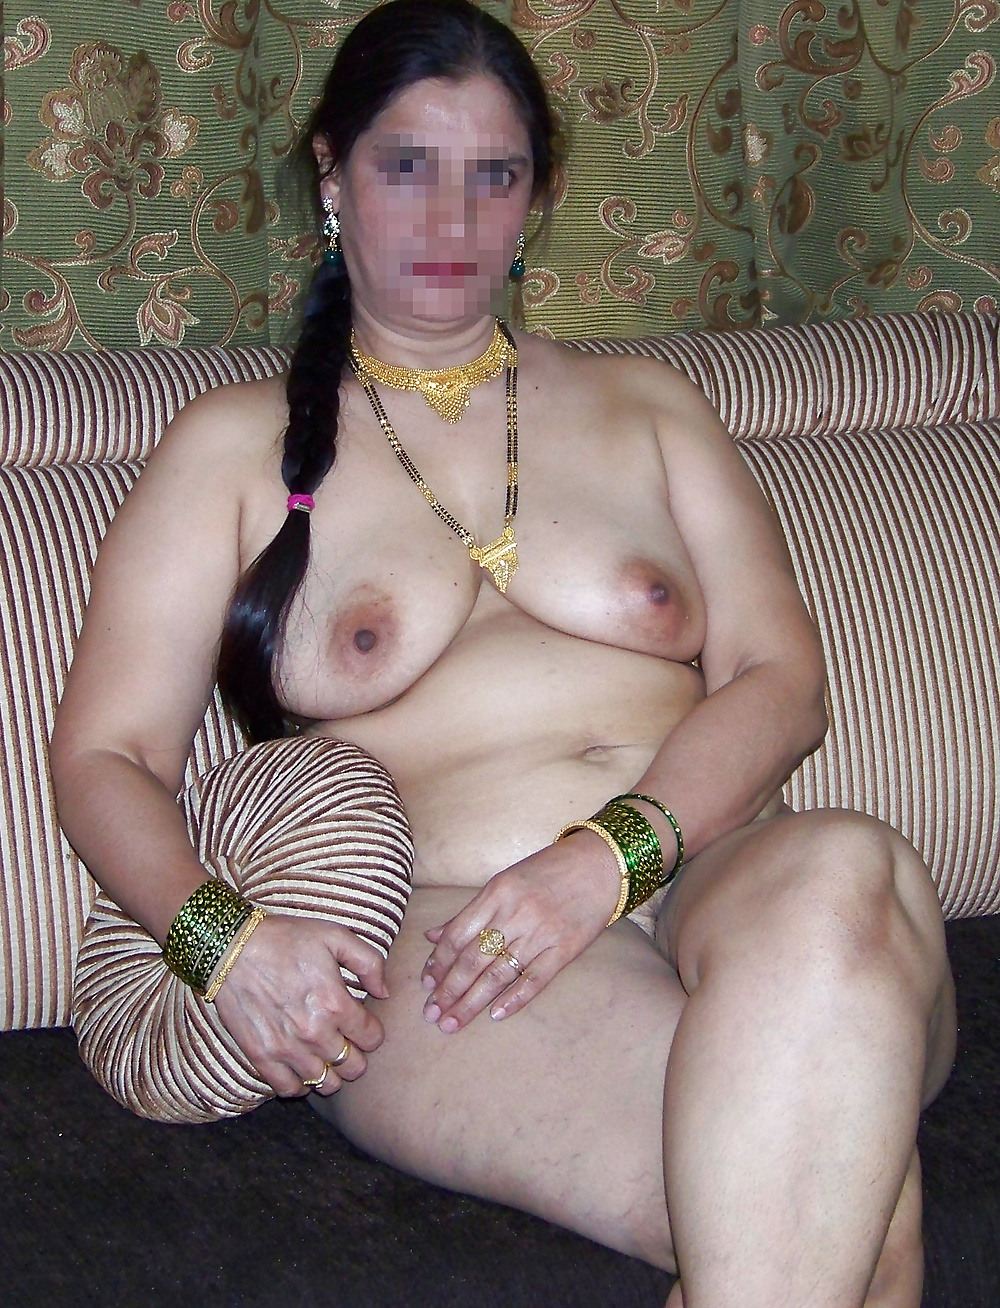 india mature mom nude -